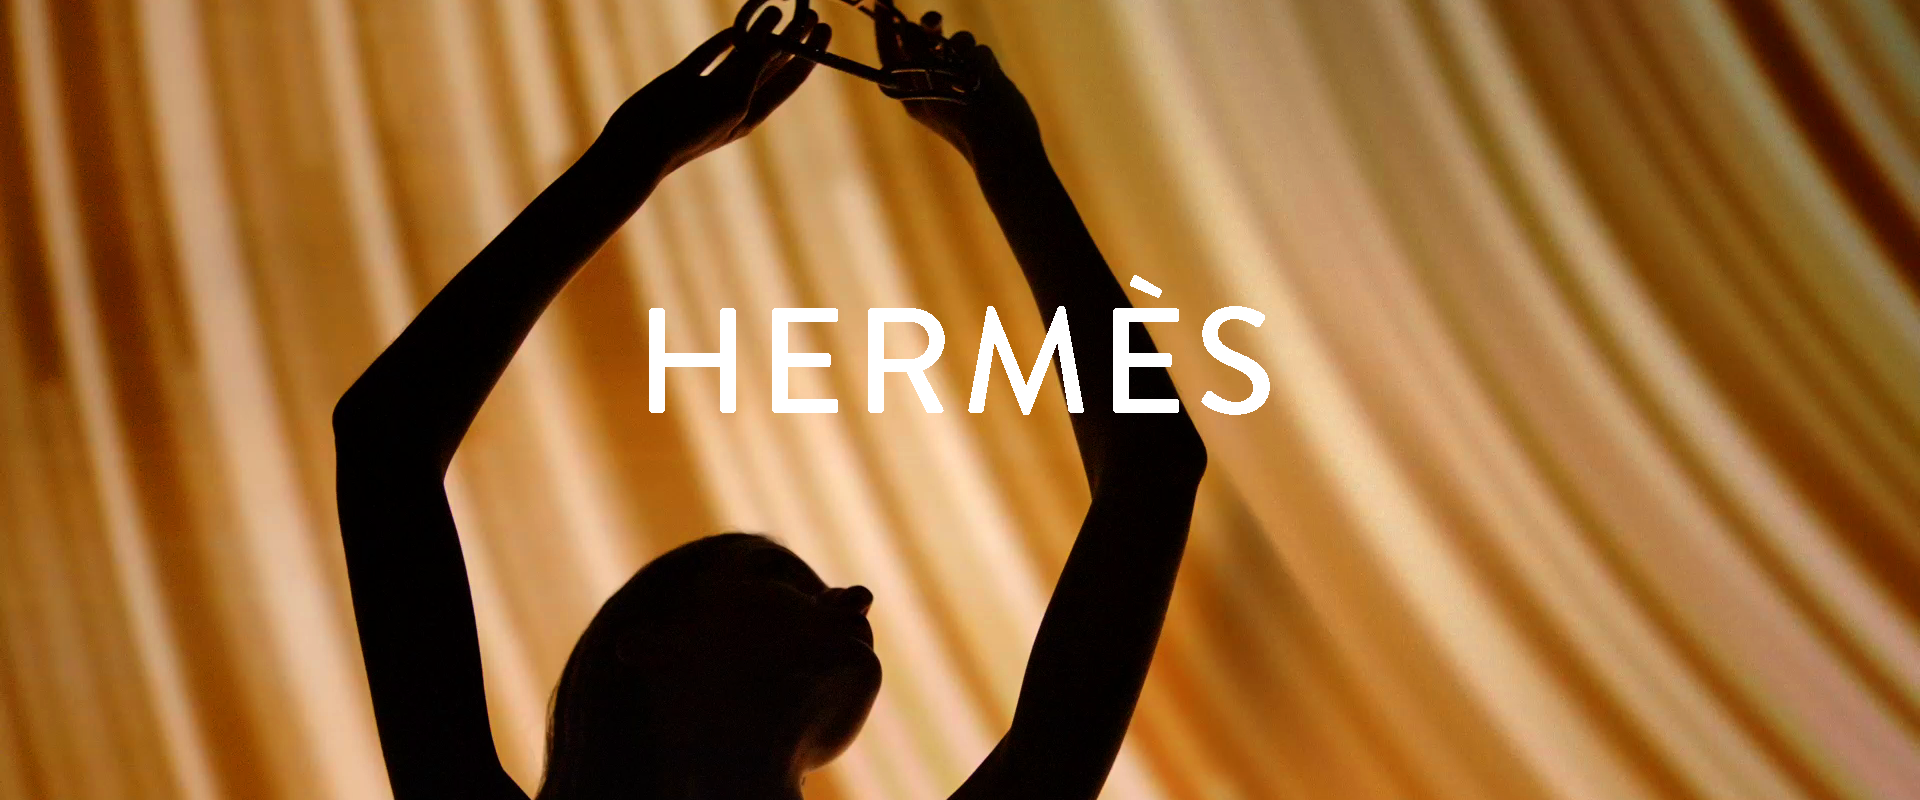 Hermès_Artisans of Enlightenment_SS_2019 Jewelry-_Carousel_TEXT_4.png